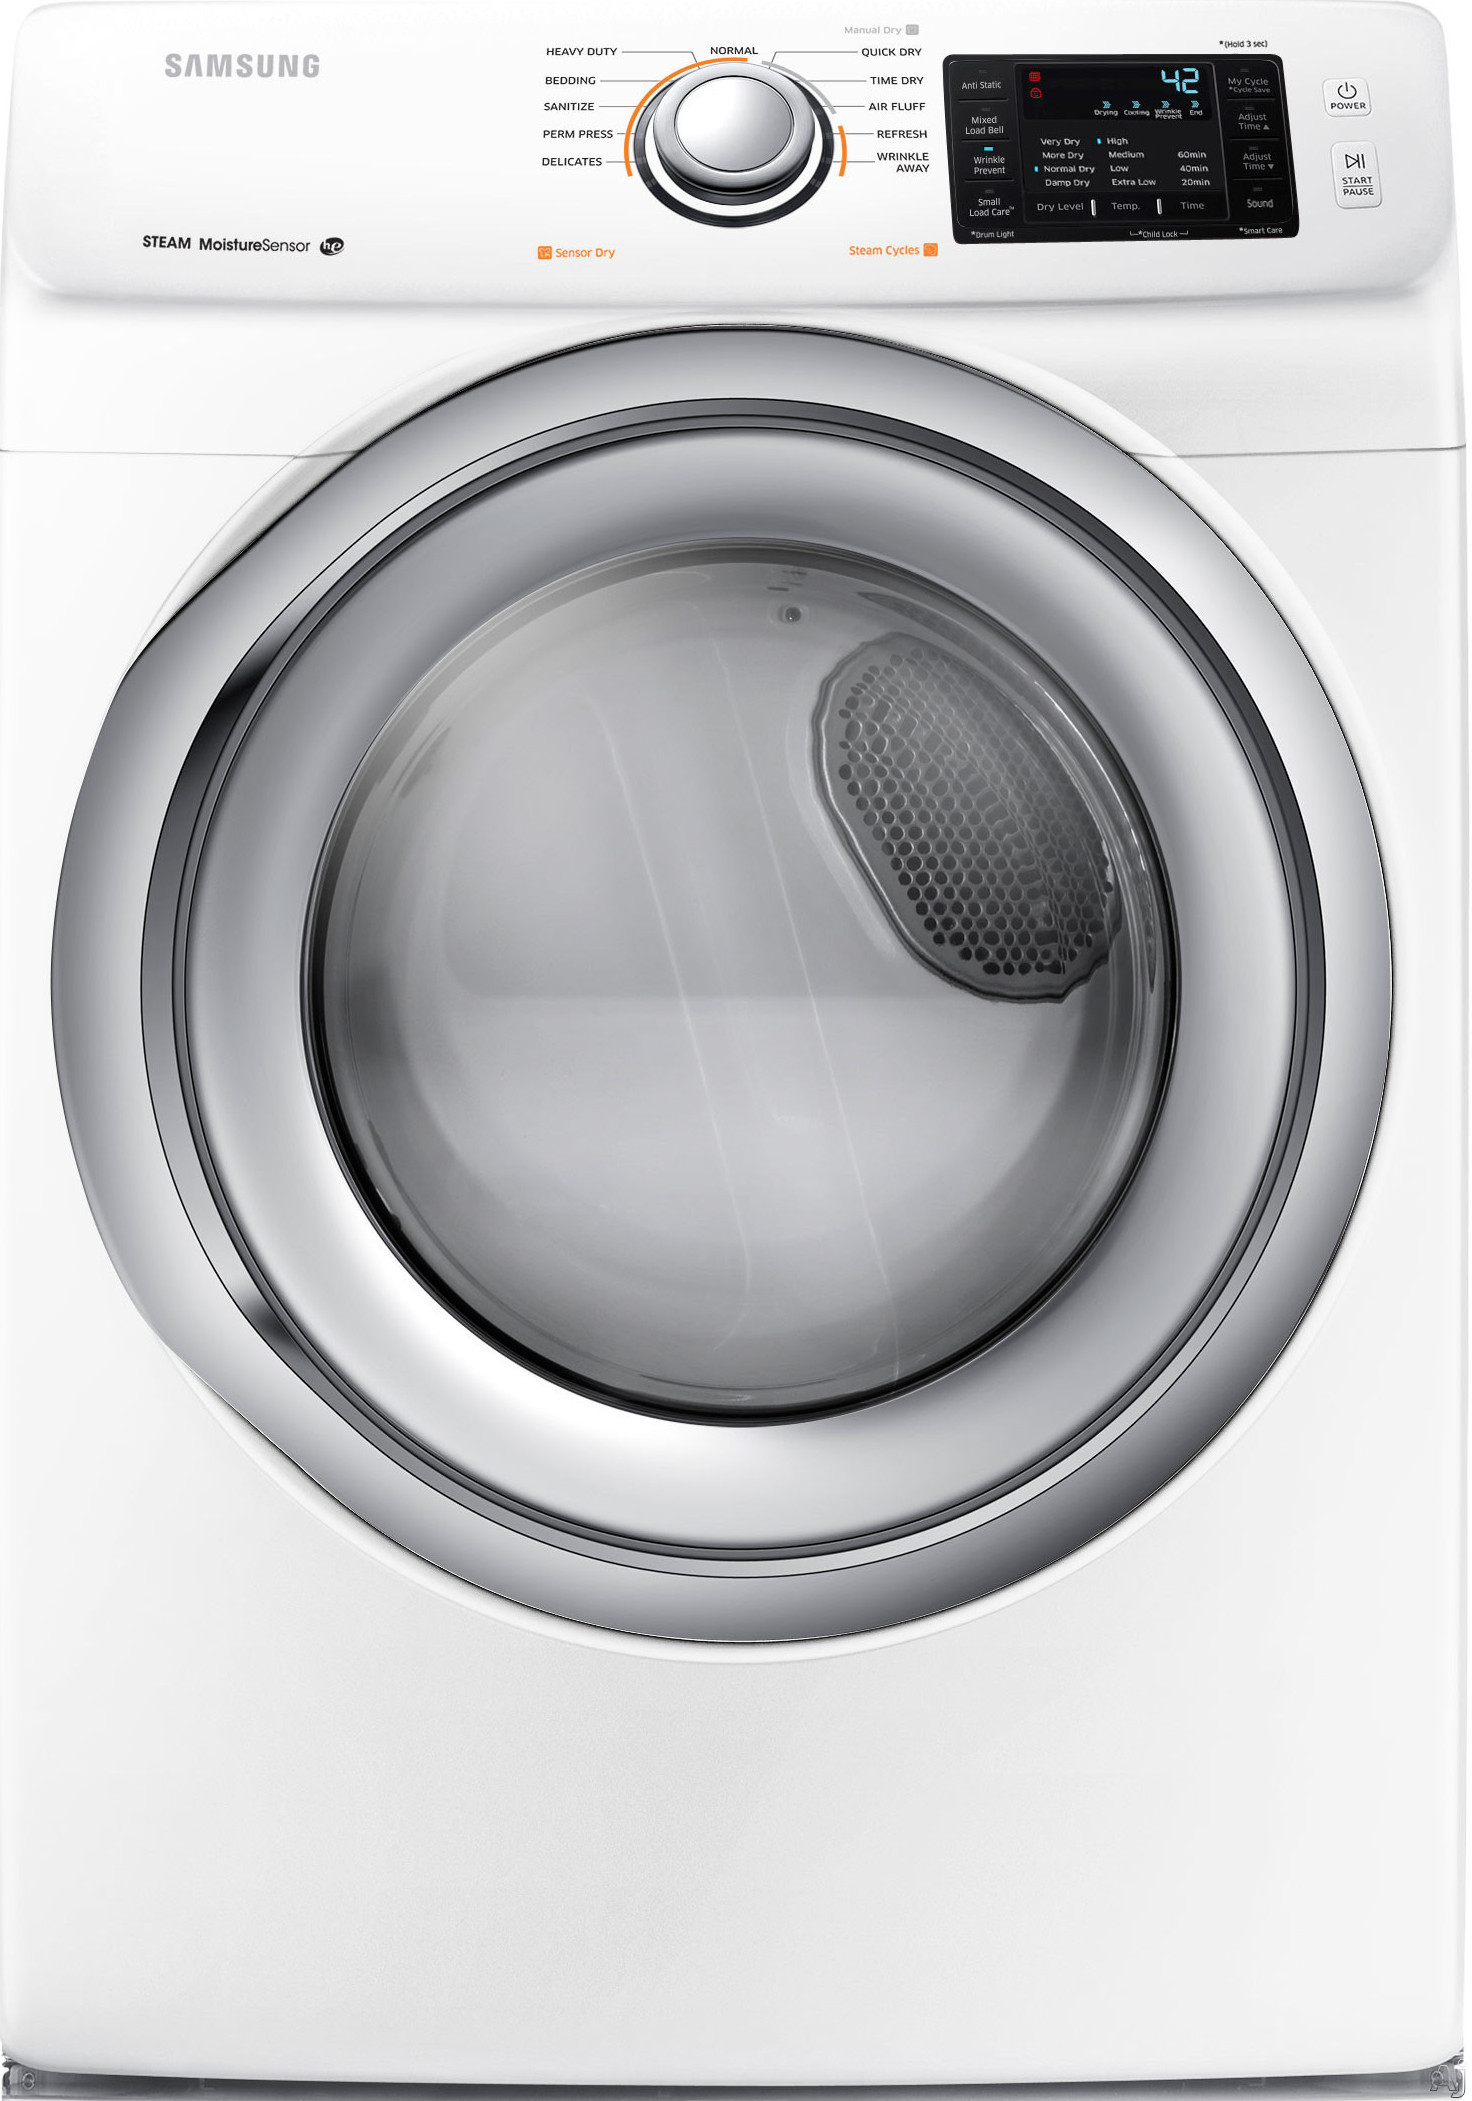 Image of Samsung DV42H5200EW 27 Inch Electric Dryer with Steam Technology, Wrinkle Prevent, Sensor Dry, Smart Care, 11 Dry Cycles, Lint Filter Indicator, Reversible Door and 7.4 cu. ft. Capacity: White